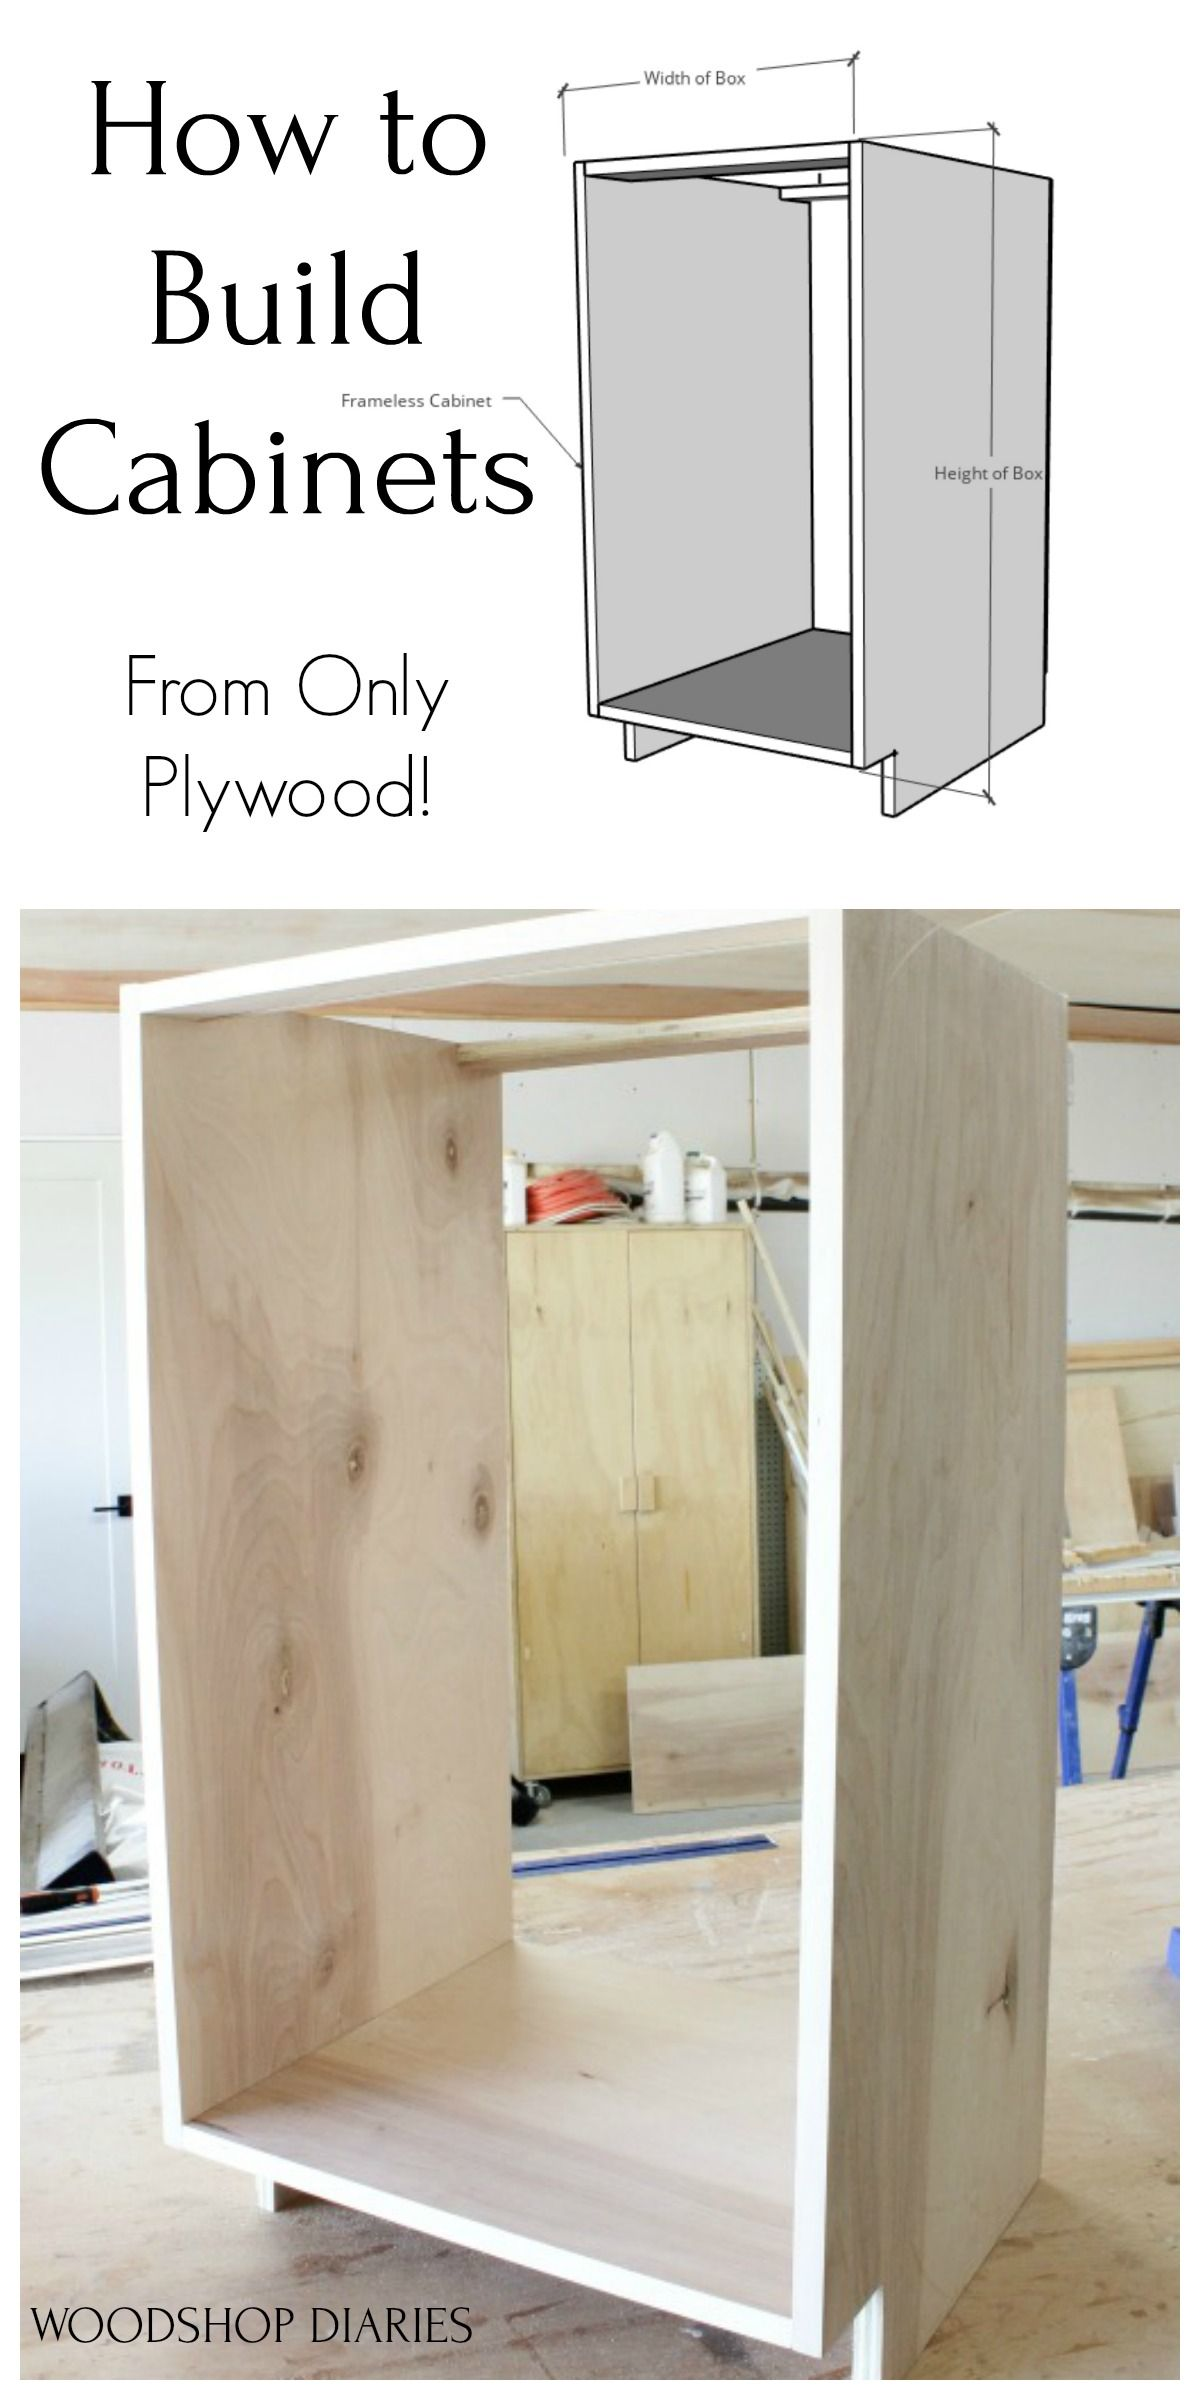 Diy Kitchen Cabinets Made From Only Plywood In 2020 Woodworking Cabinets Building Kitchen Cabinets Diy Kitchen Cabinets